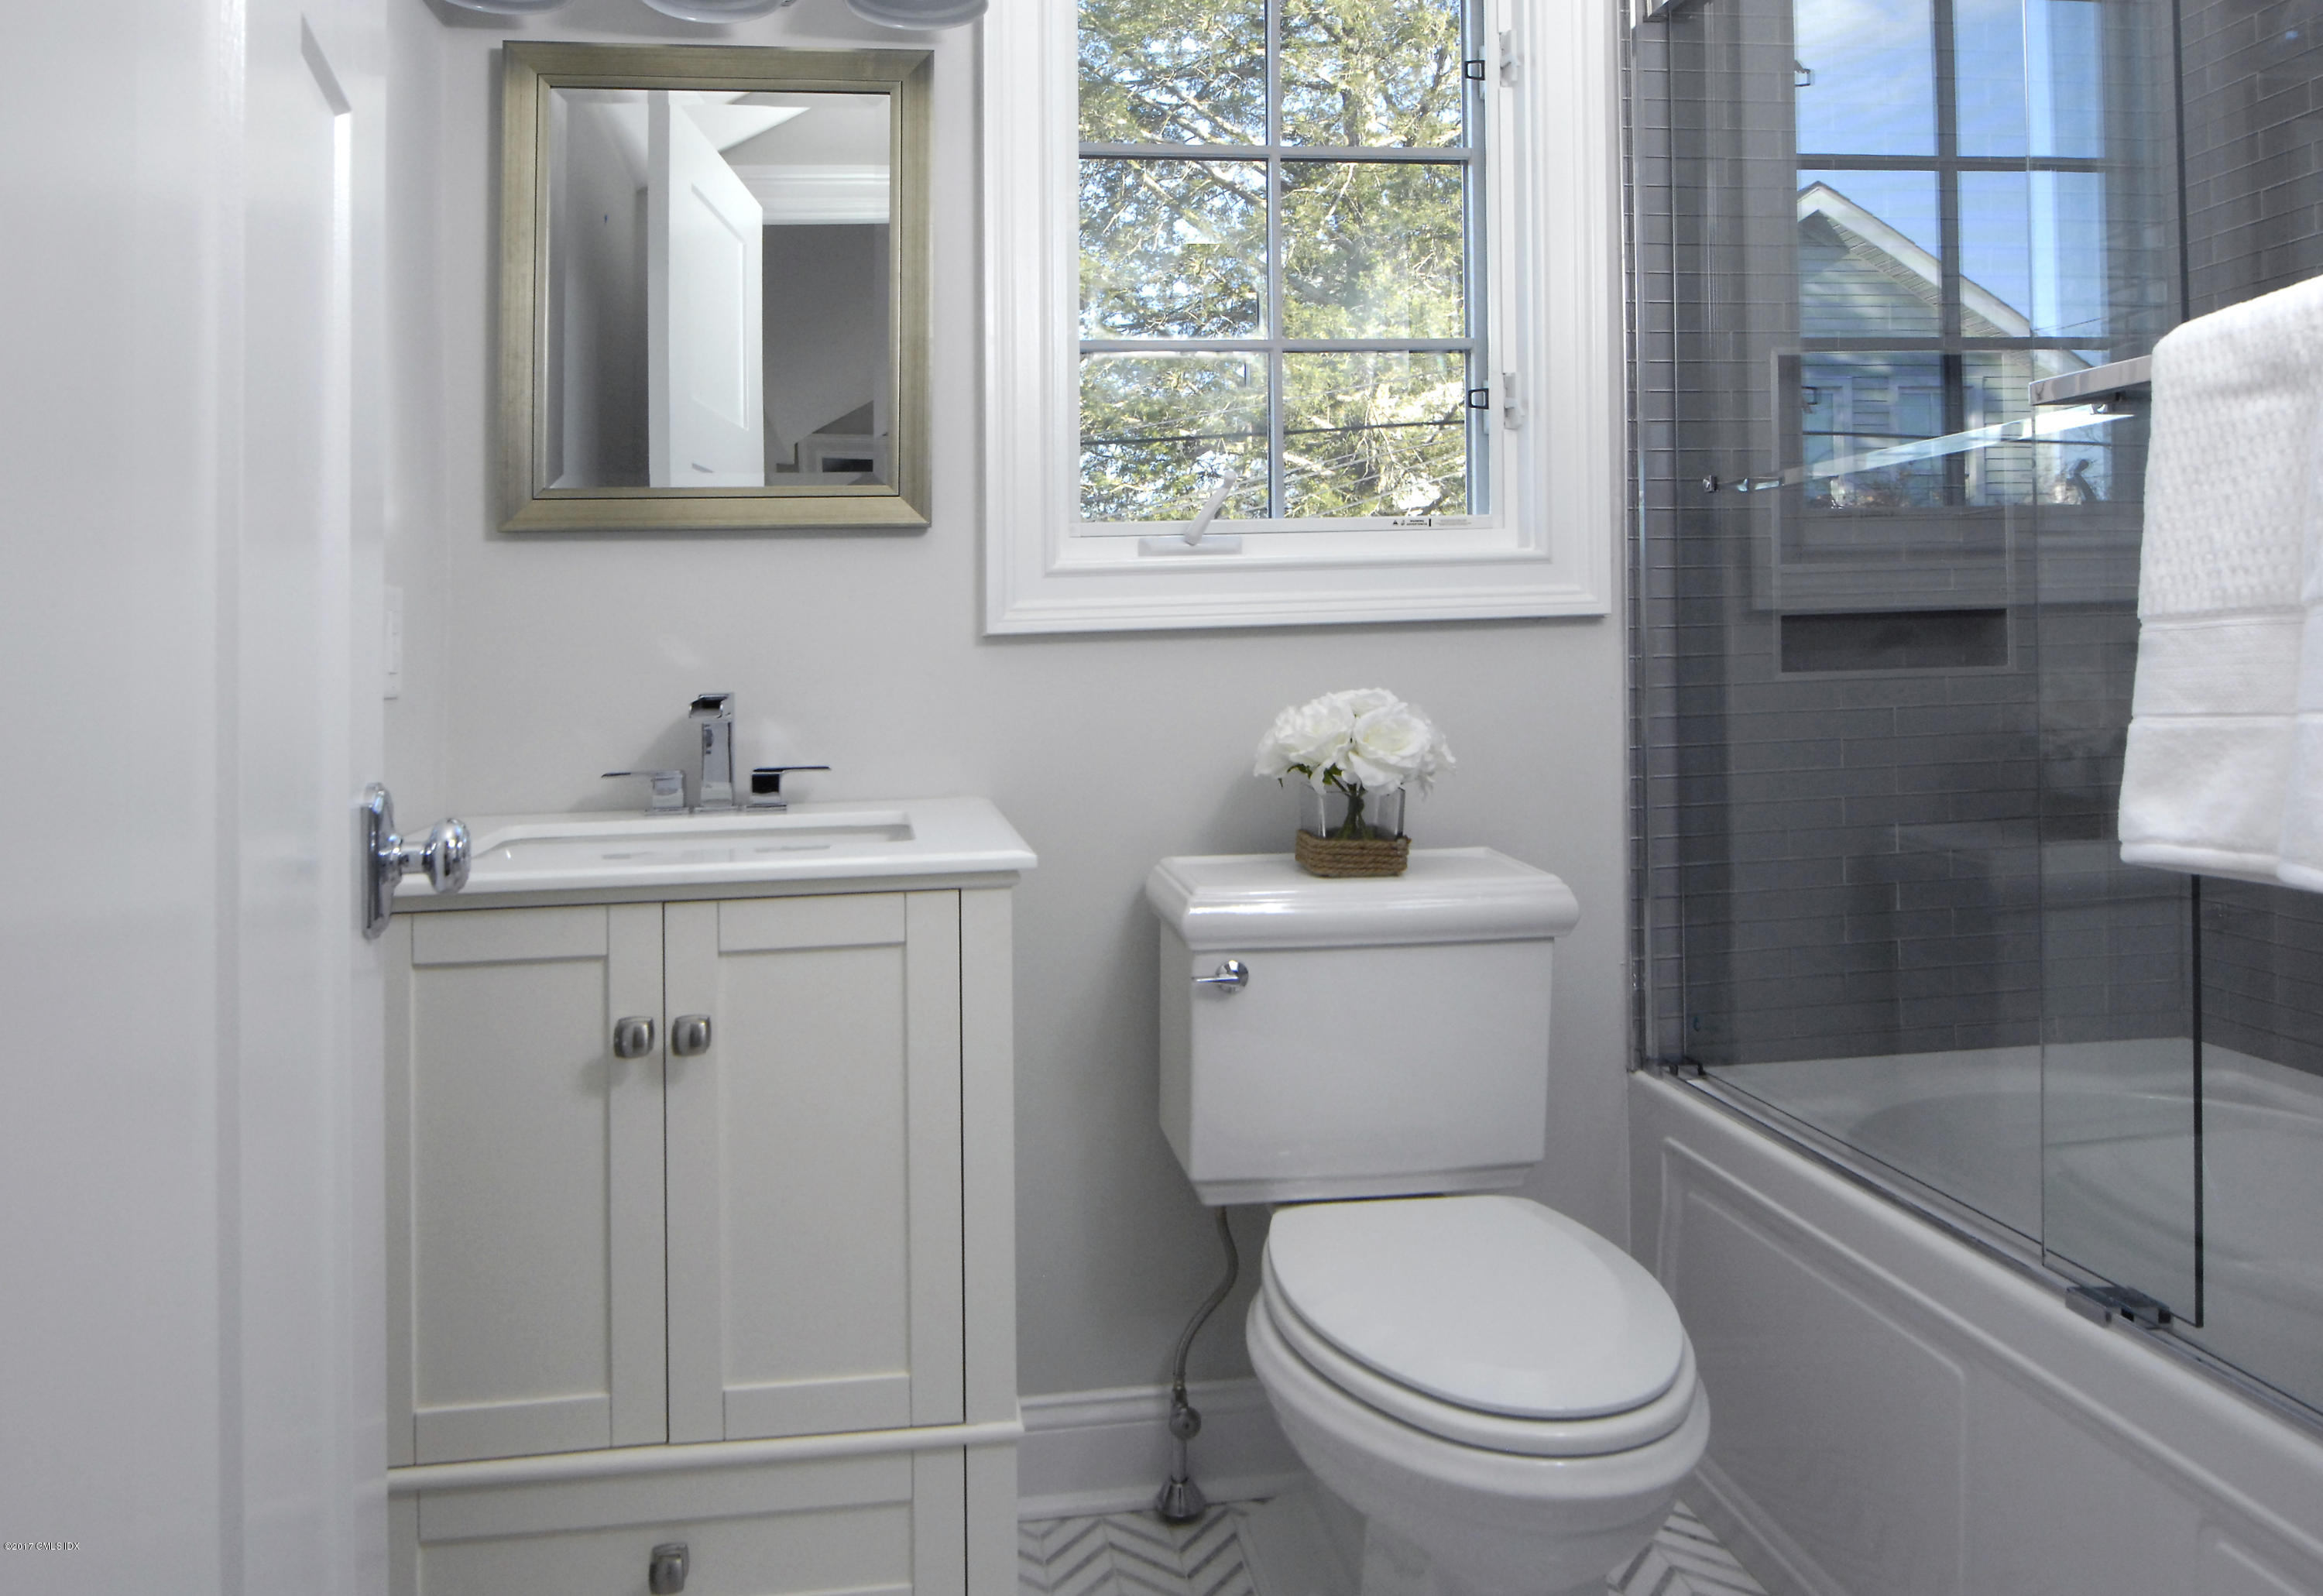 183 Connecticut Avenue, Greenwich, Connecticut 06830, 3 Bedrooms Bedrooms, ,2 BathroomsBathrooms,Single family,For sale,Connecticut,109897